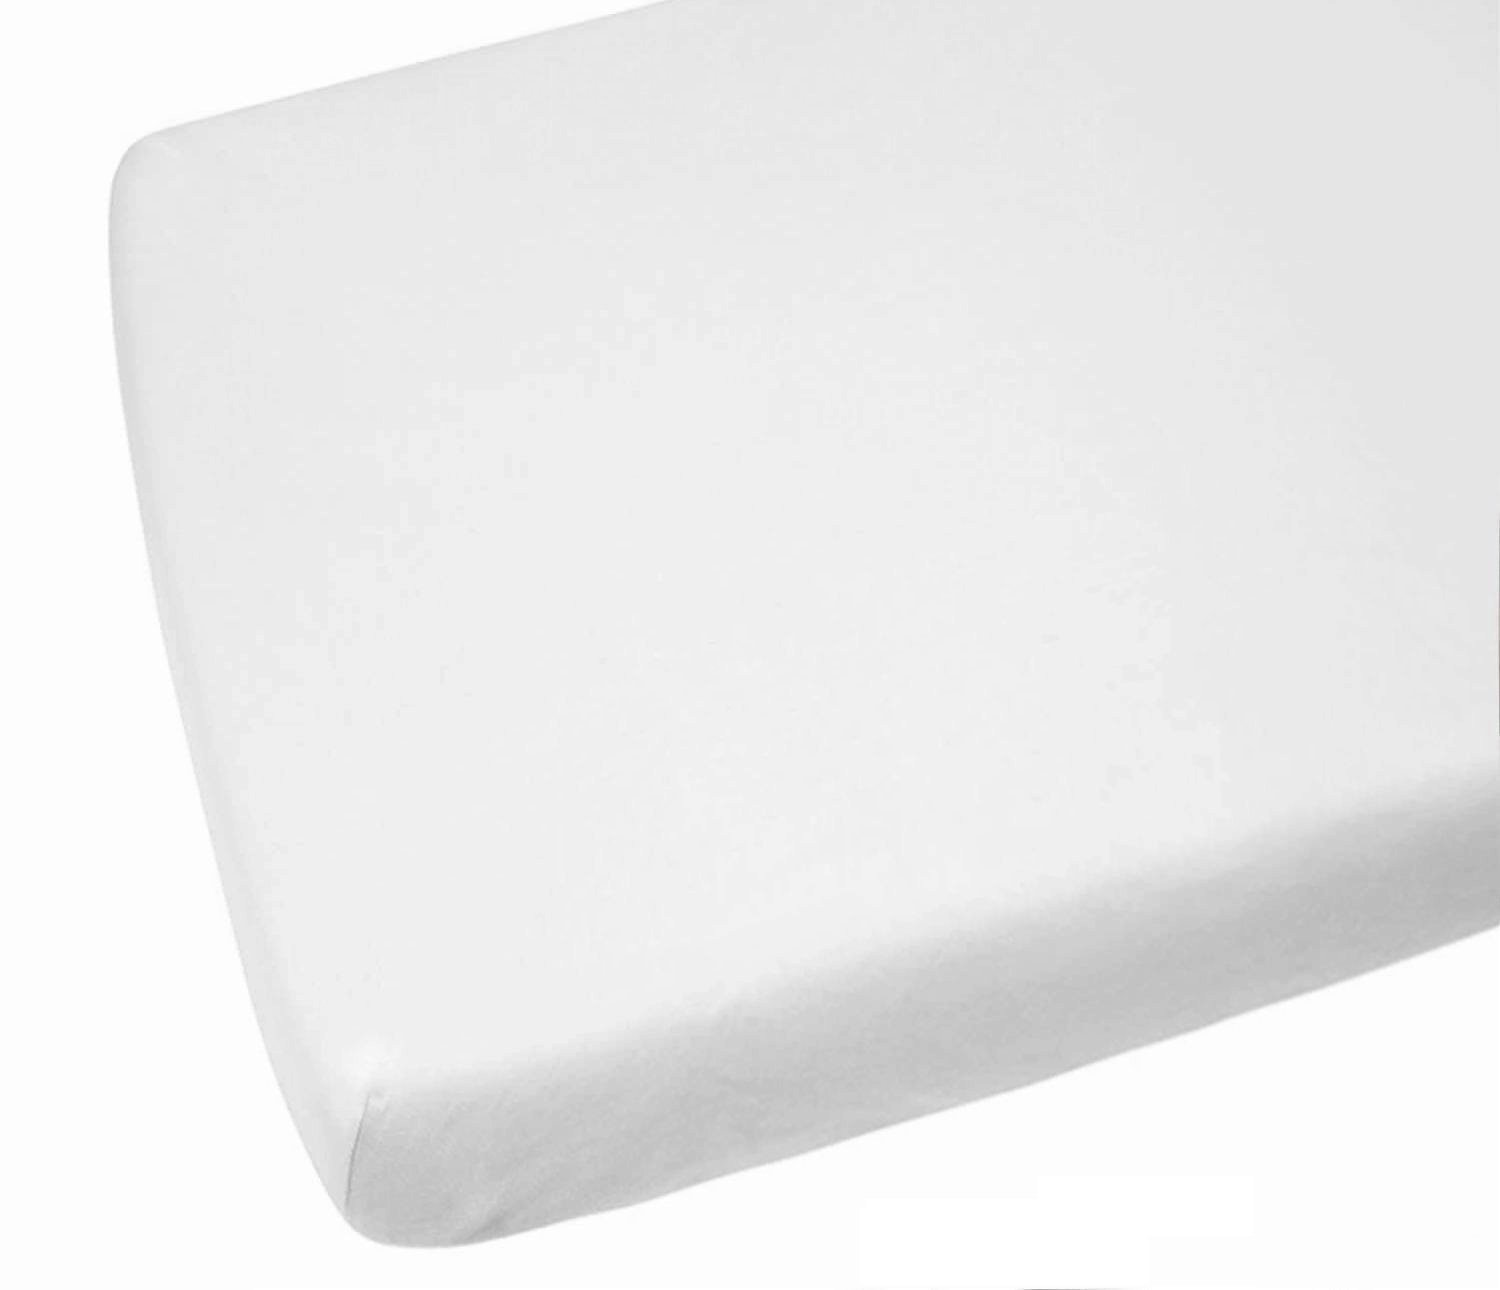 2 x AmigoZone Polly Cotton Cot Bed Fitted Sheet (Cot Bed (70 x 140cm), White) Larra Limited